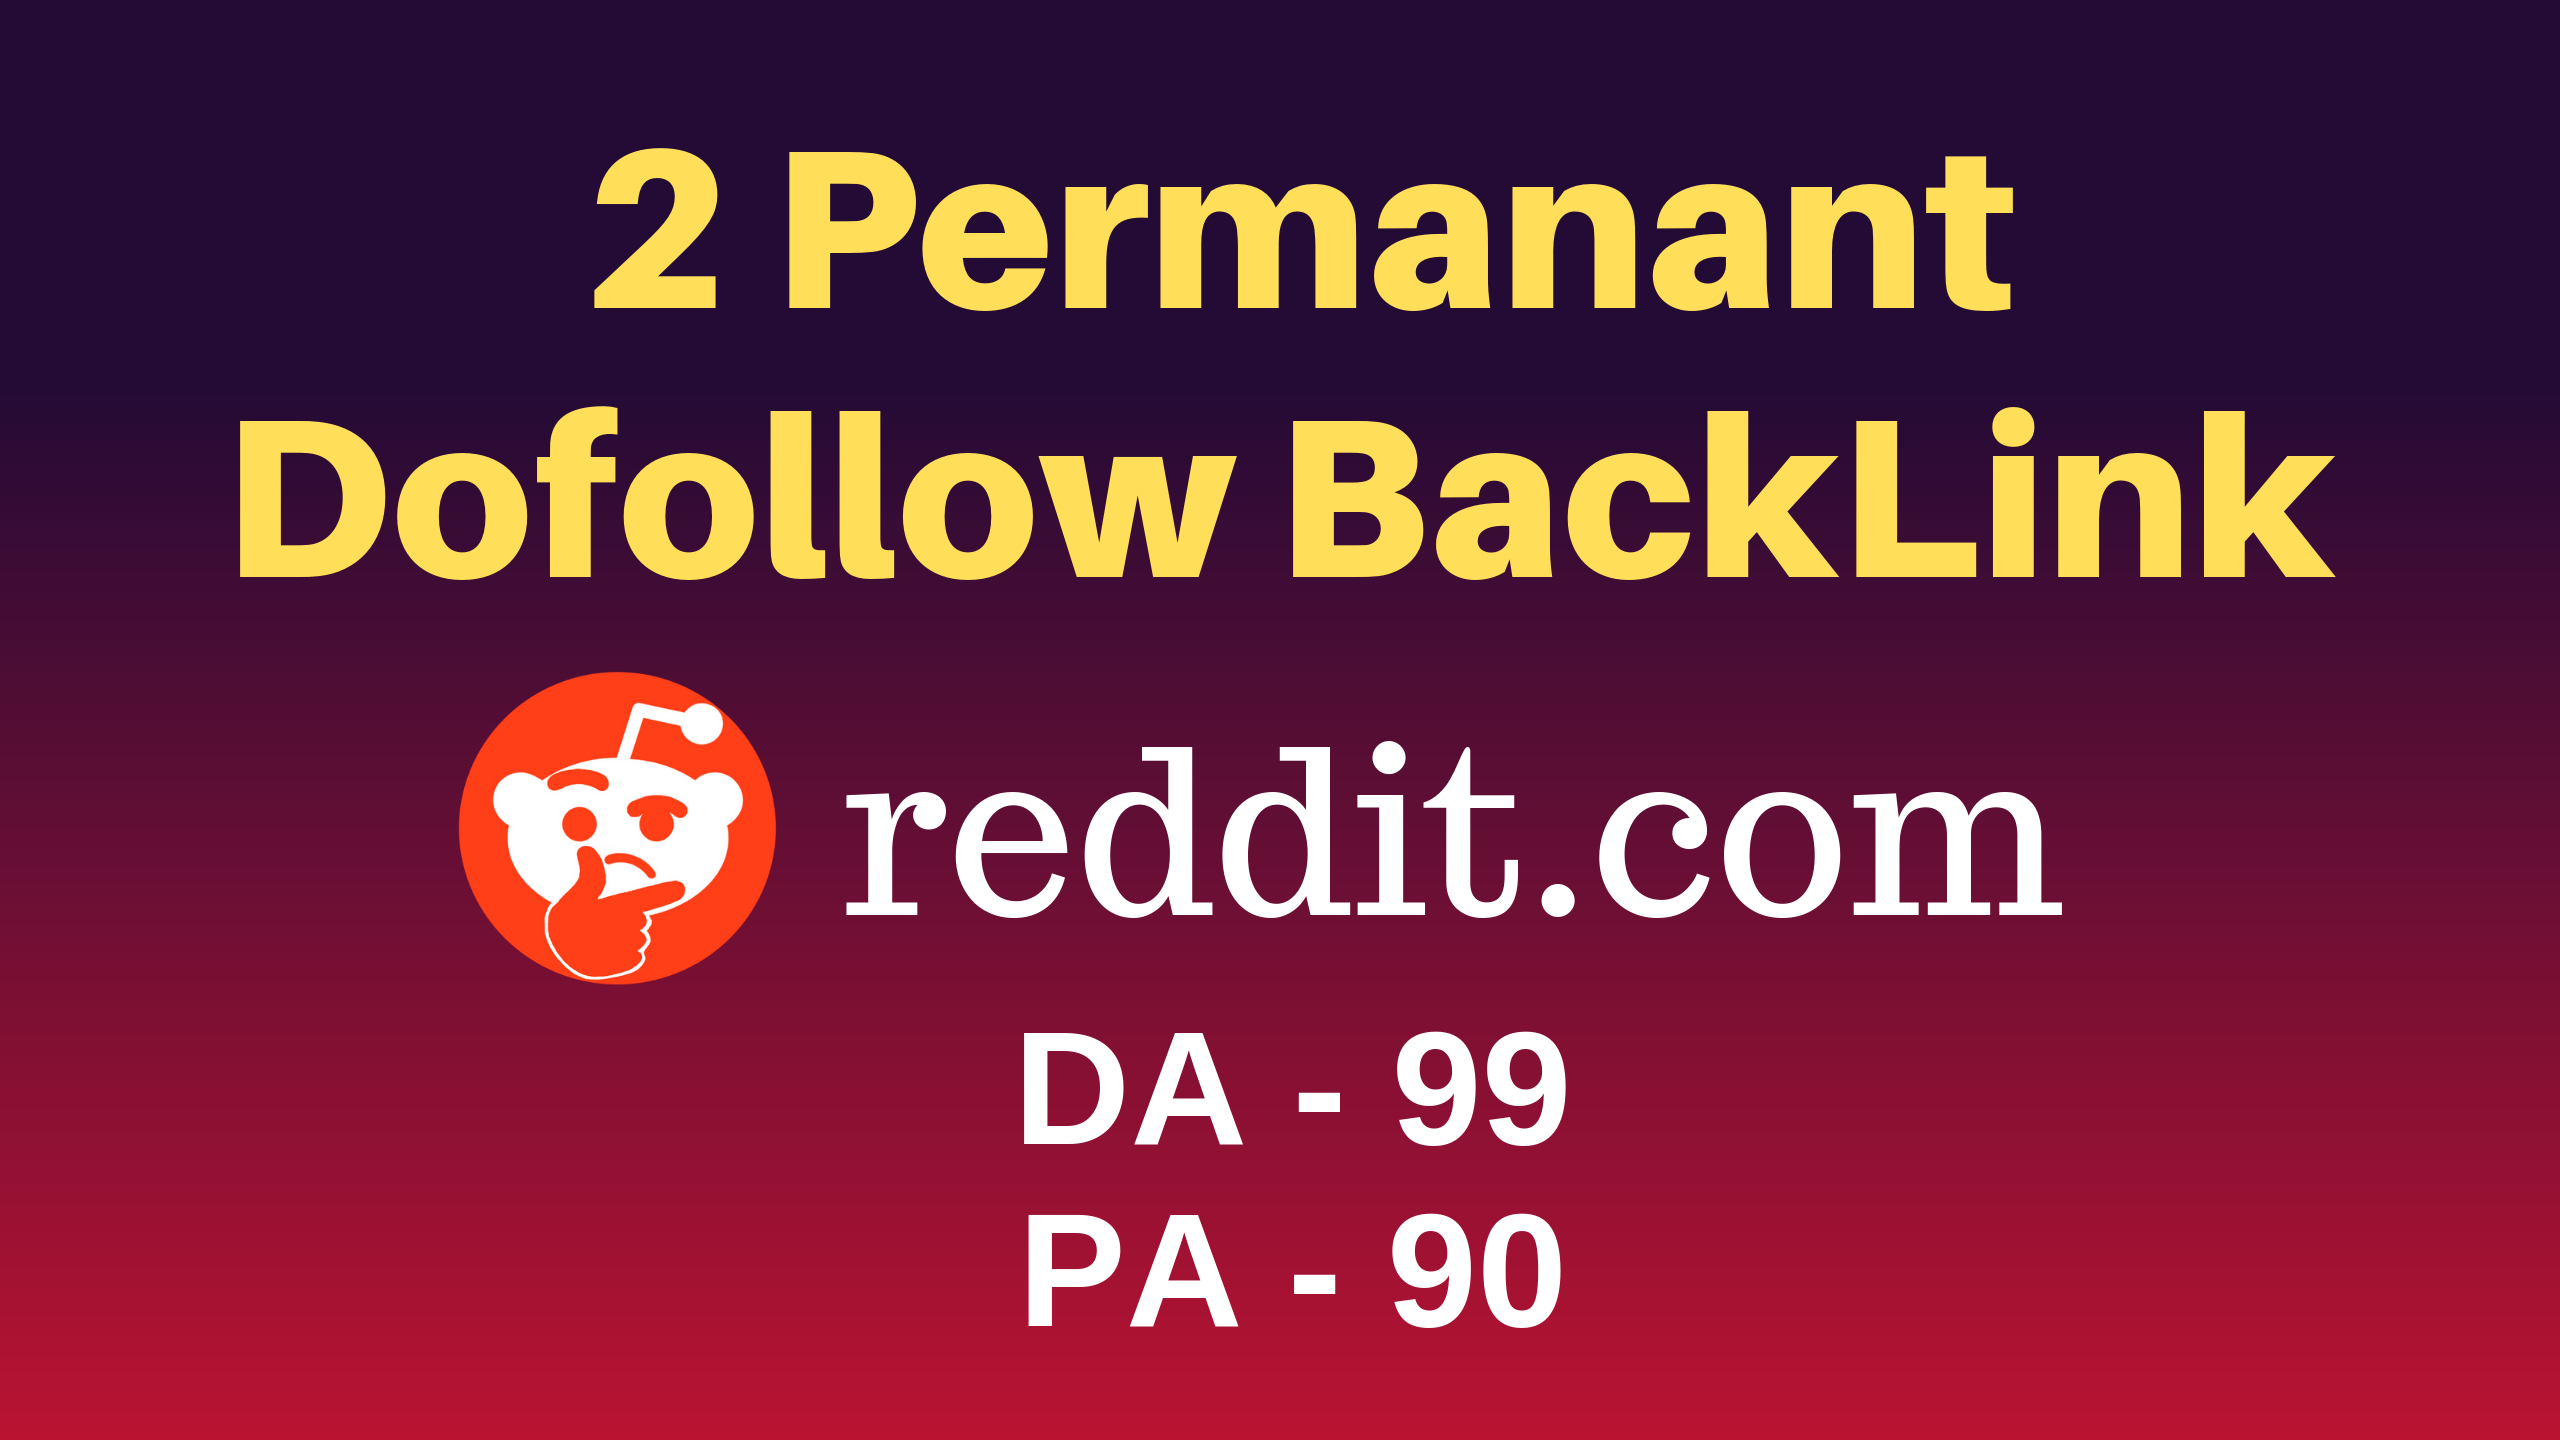 2 Permanant High Quality Reddit Dofollow DA 99 & PA 90 Backlink